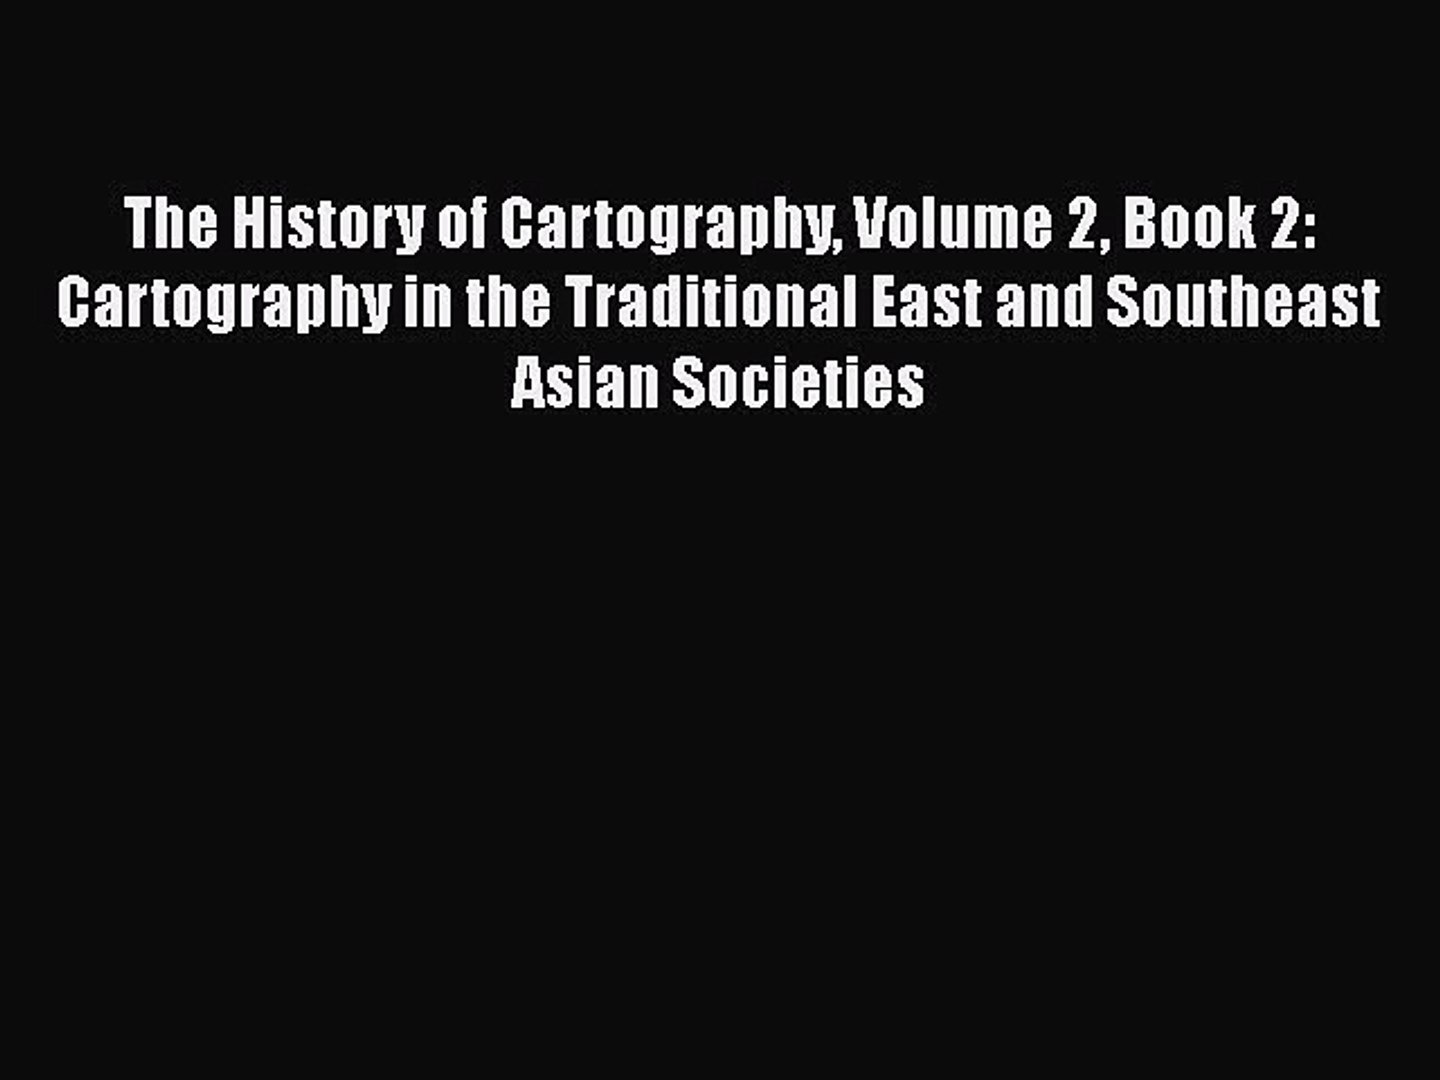 [PDF Download] The History of Cartography Volume 2 Book 2: Cartography in  the Traditional East